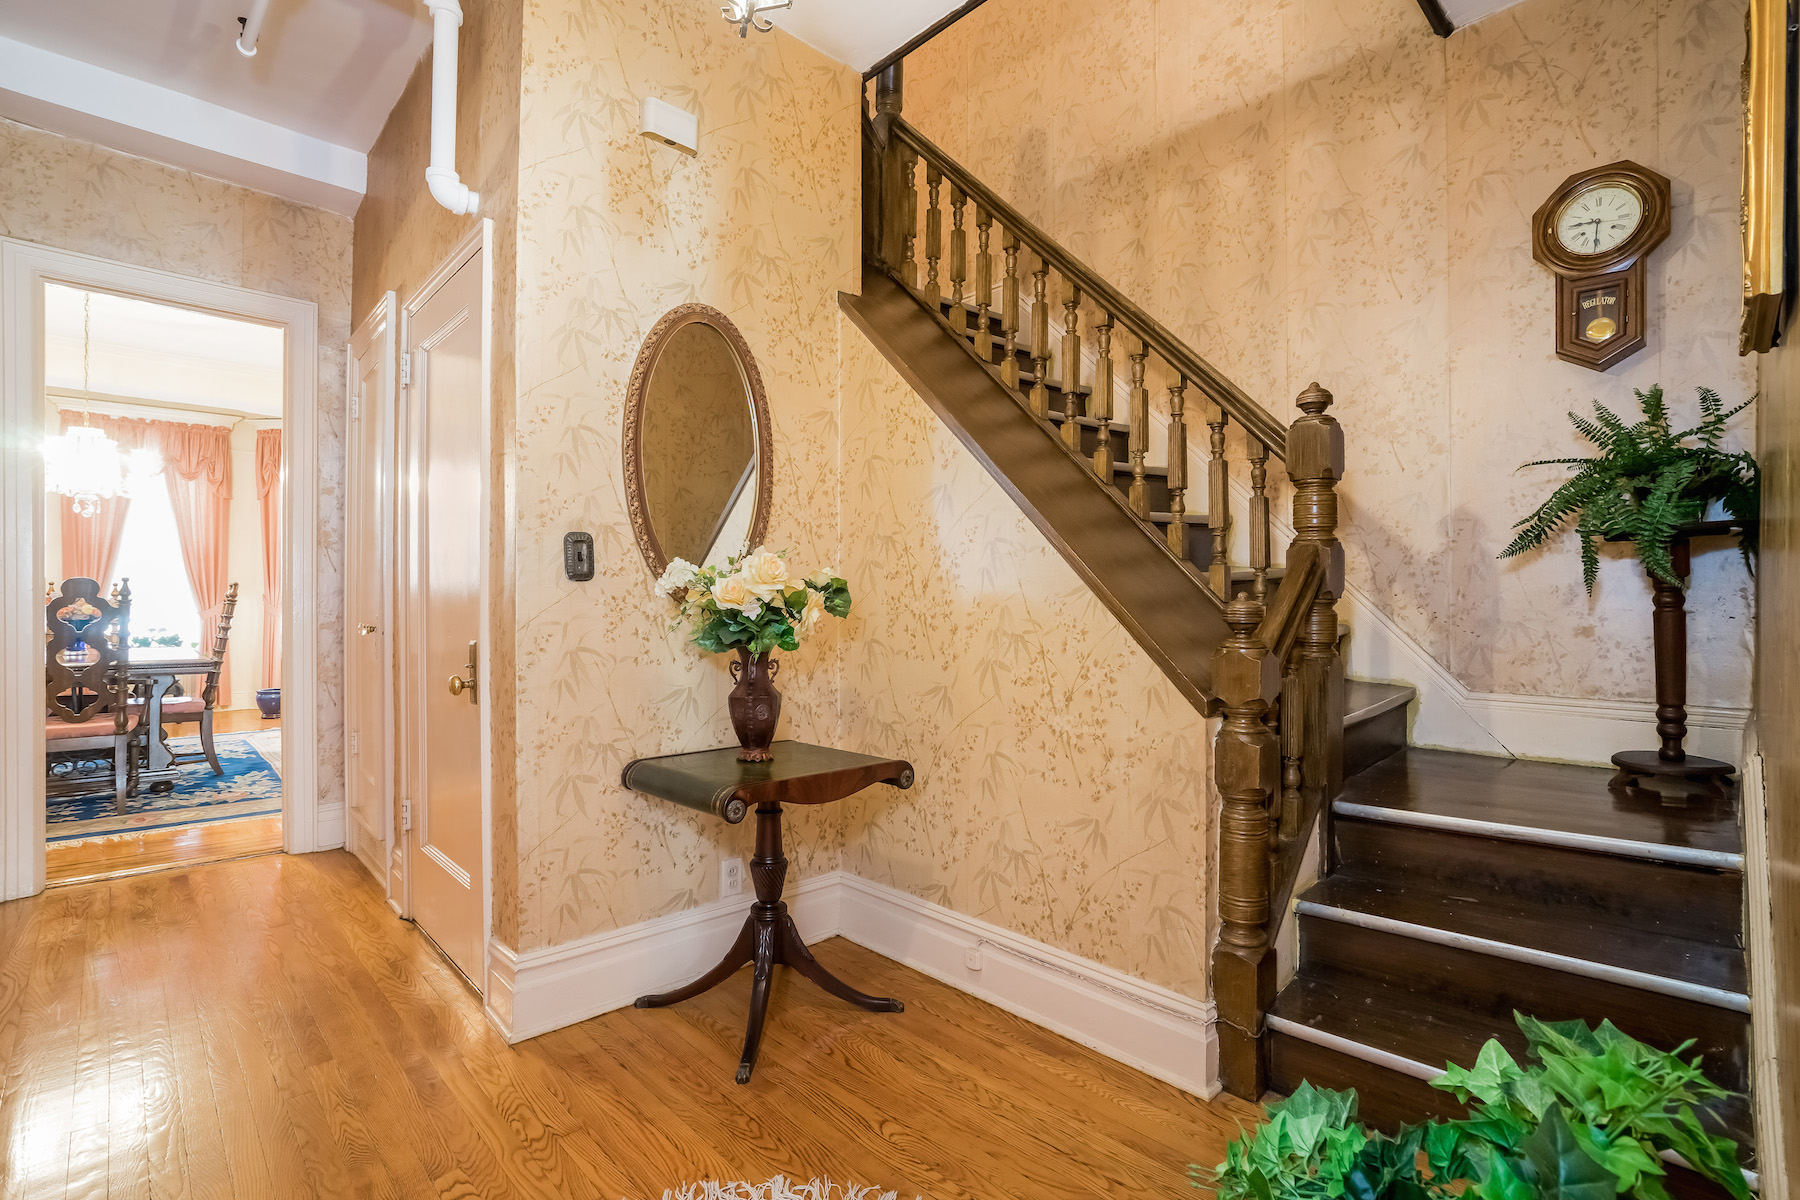 Additional photo for property listing at Elegant Queen Anne Townhome in Park Slope 901 Union Street Brooklyn, New York 11215 United States